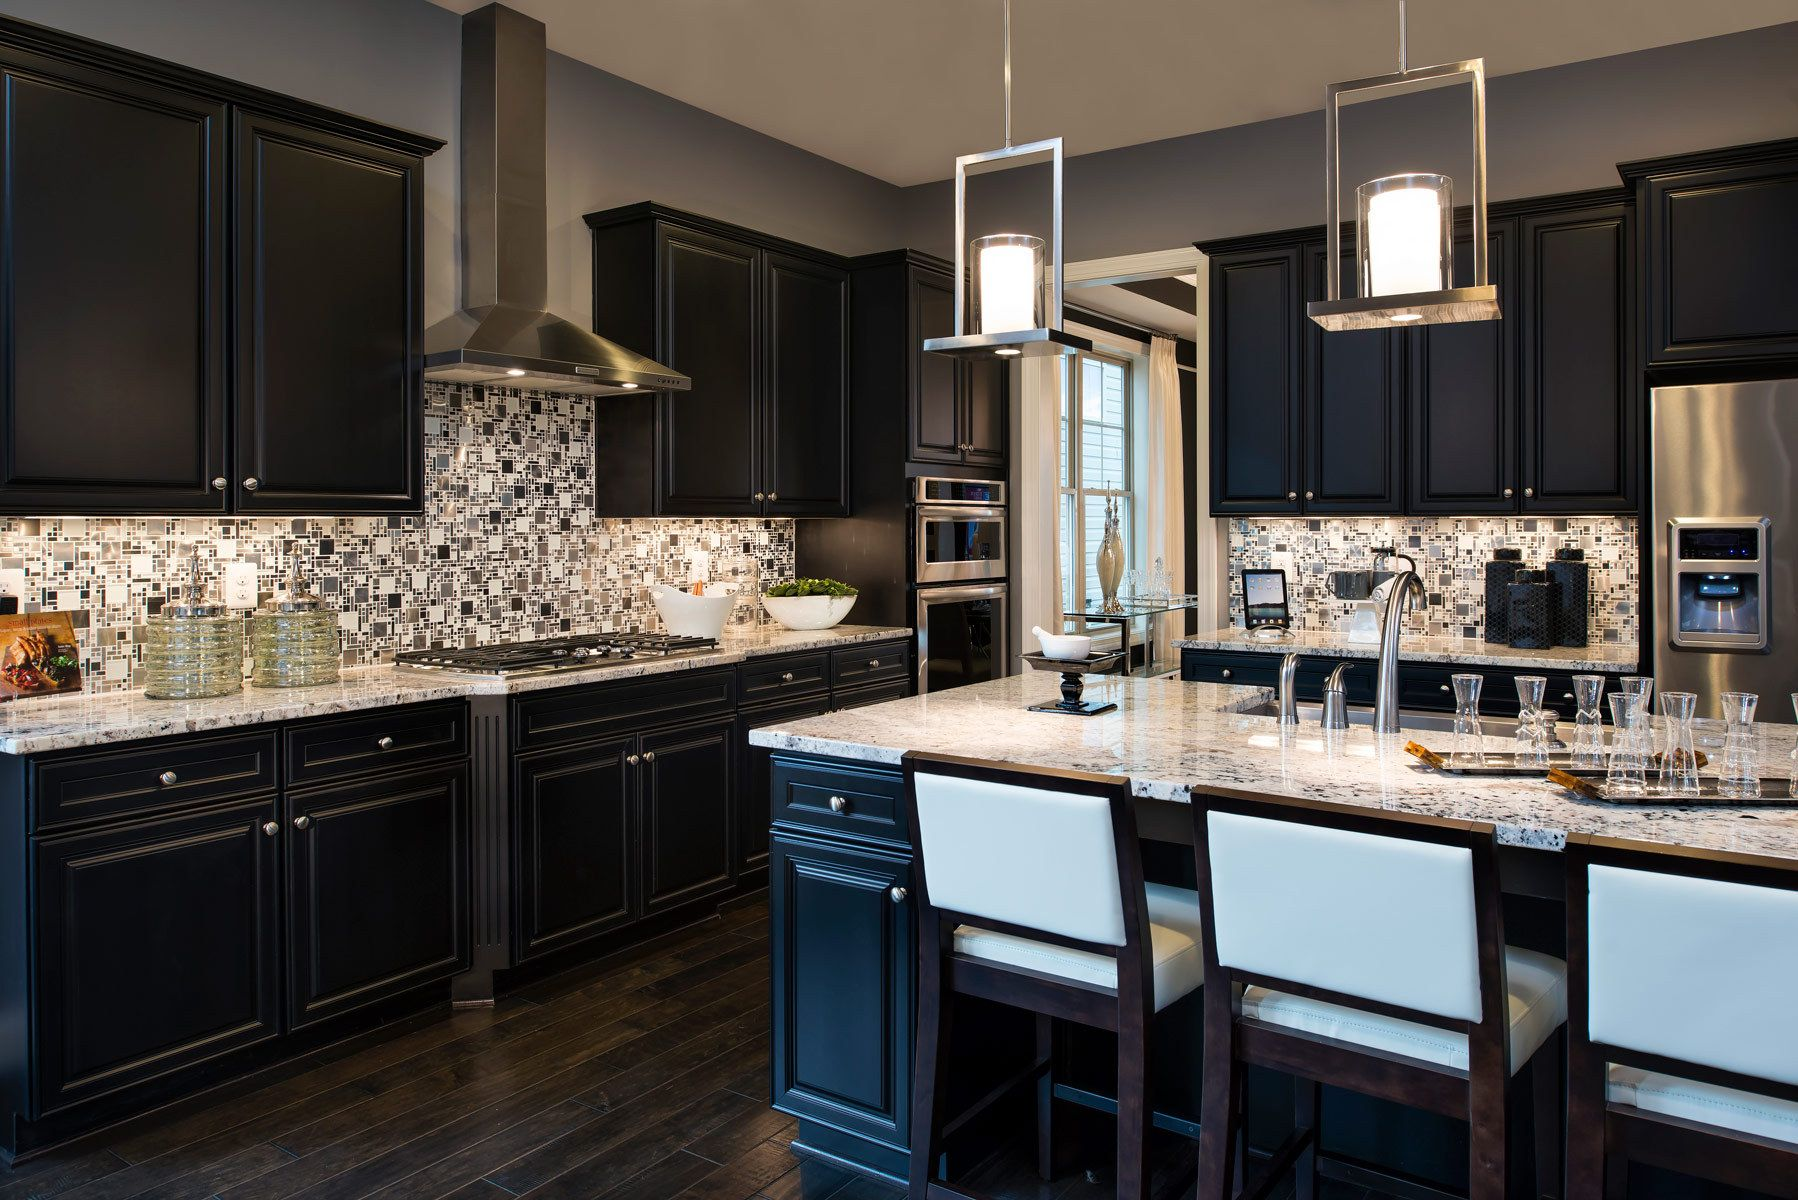 Maxine Schnitzer Photography Home Builder Projects I